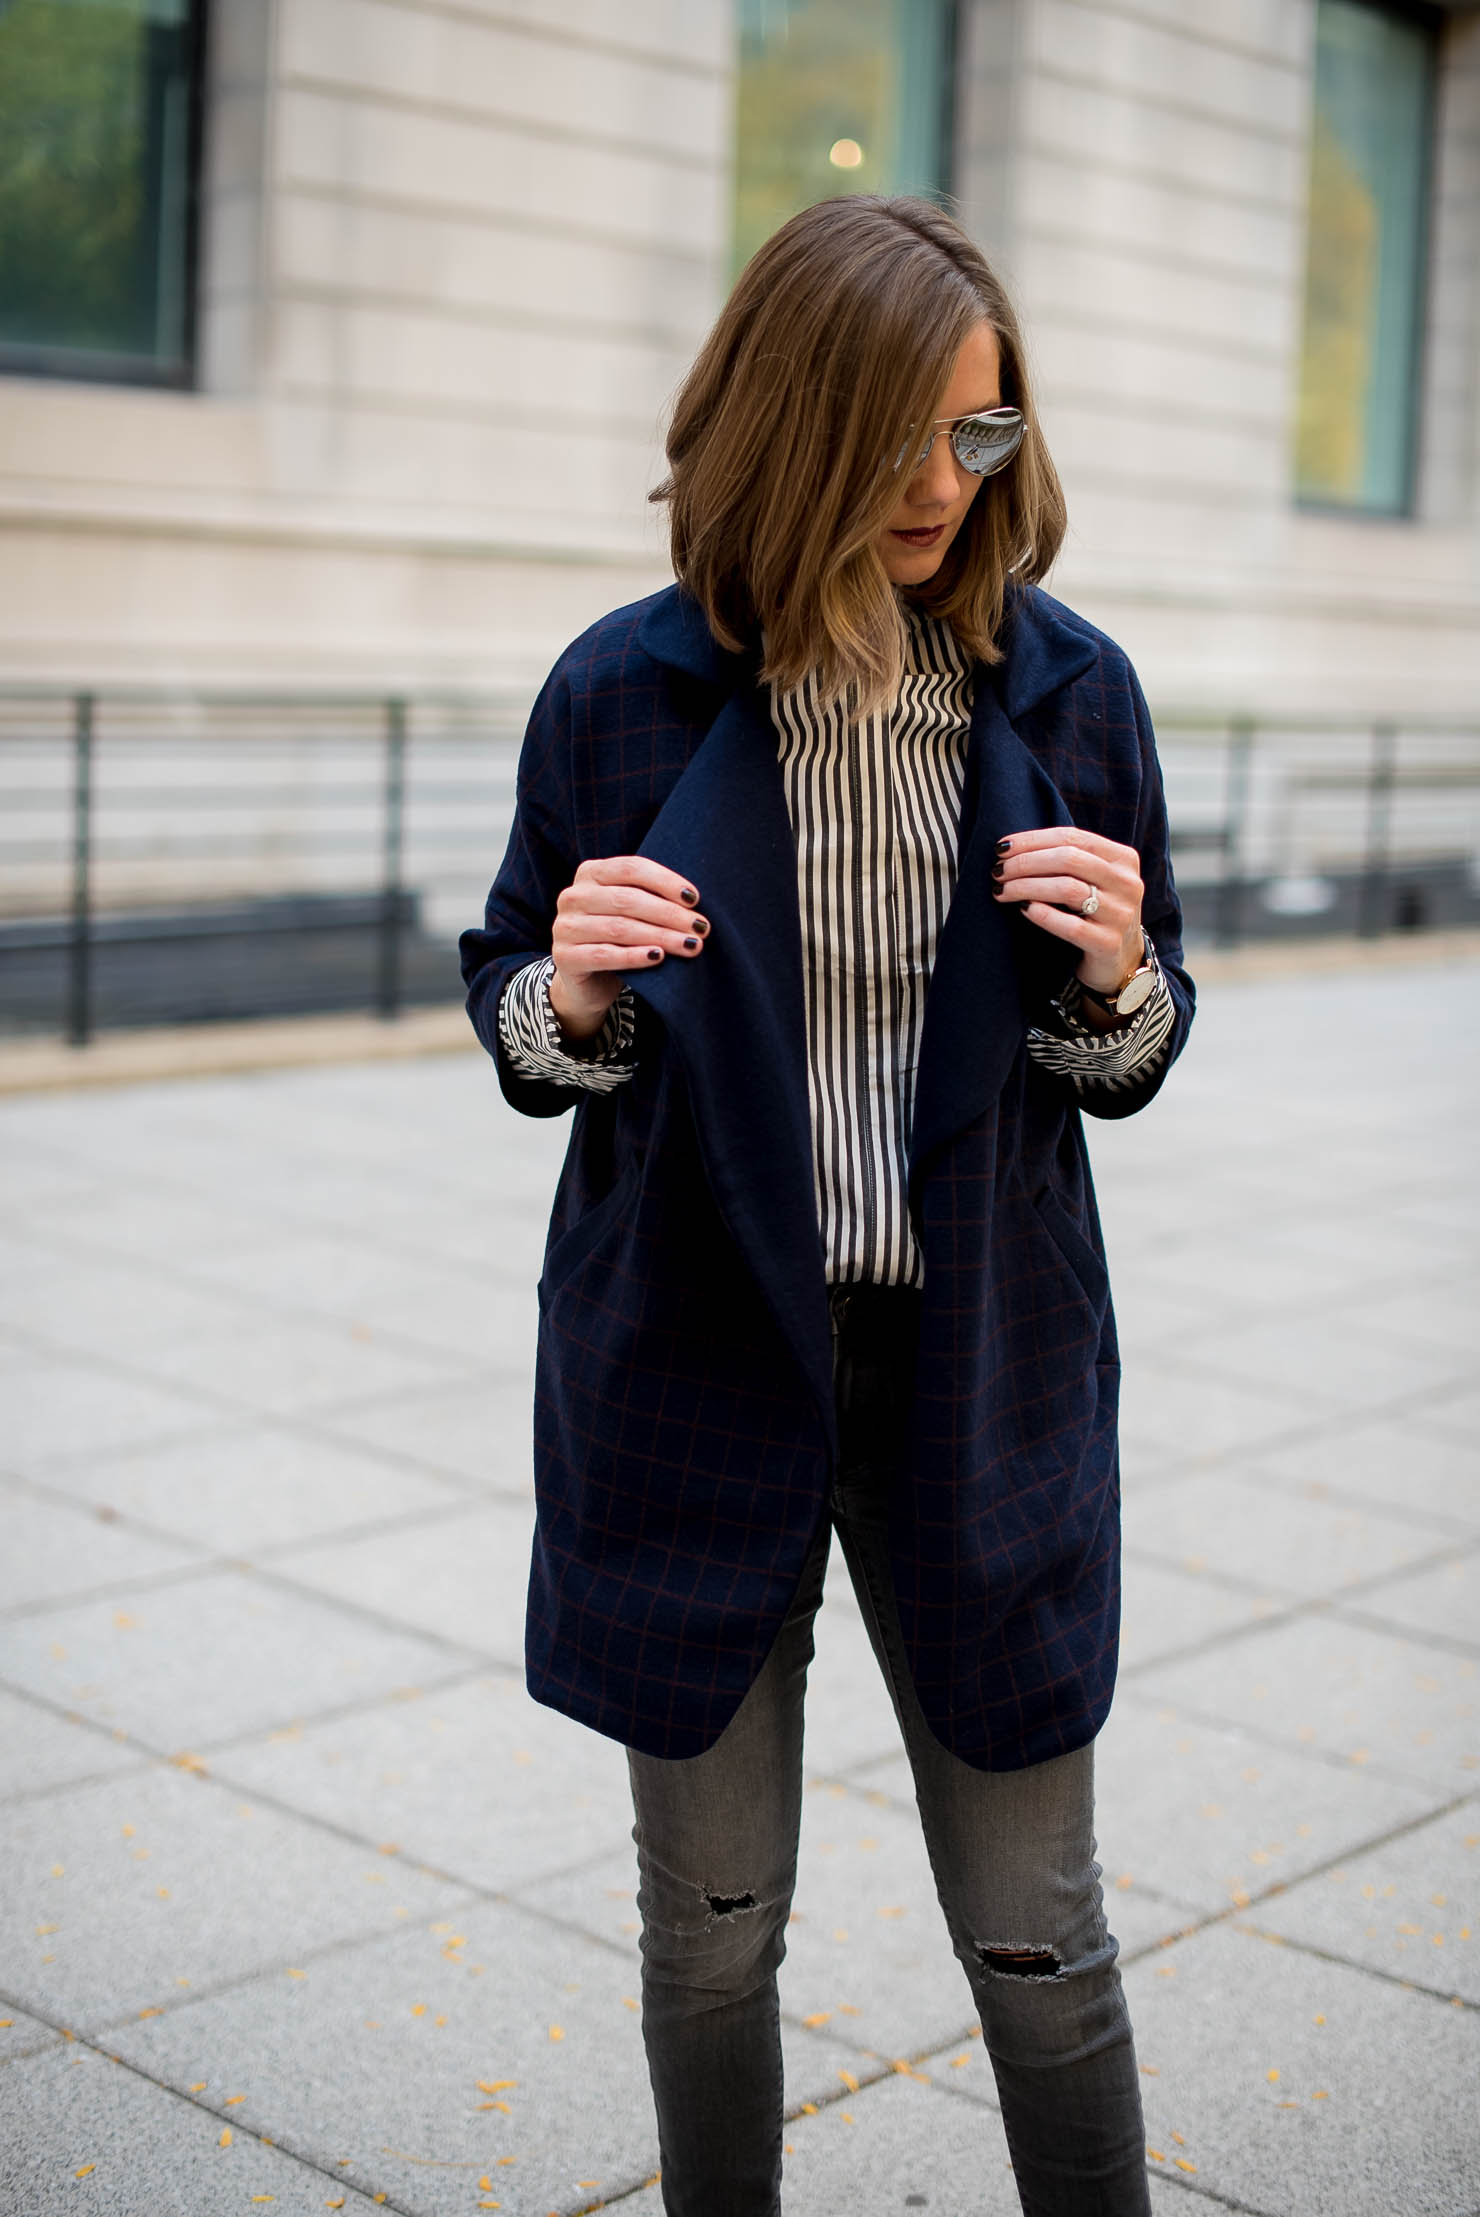 vipme-grip-print-overcoat-hm-ruffle-collar-striped-blouse-business-casual-outfit